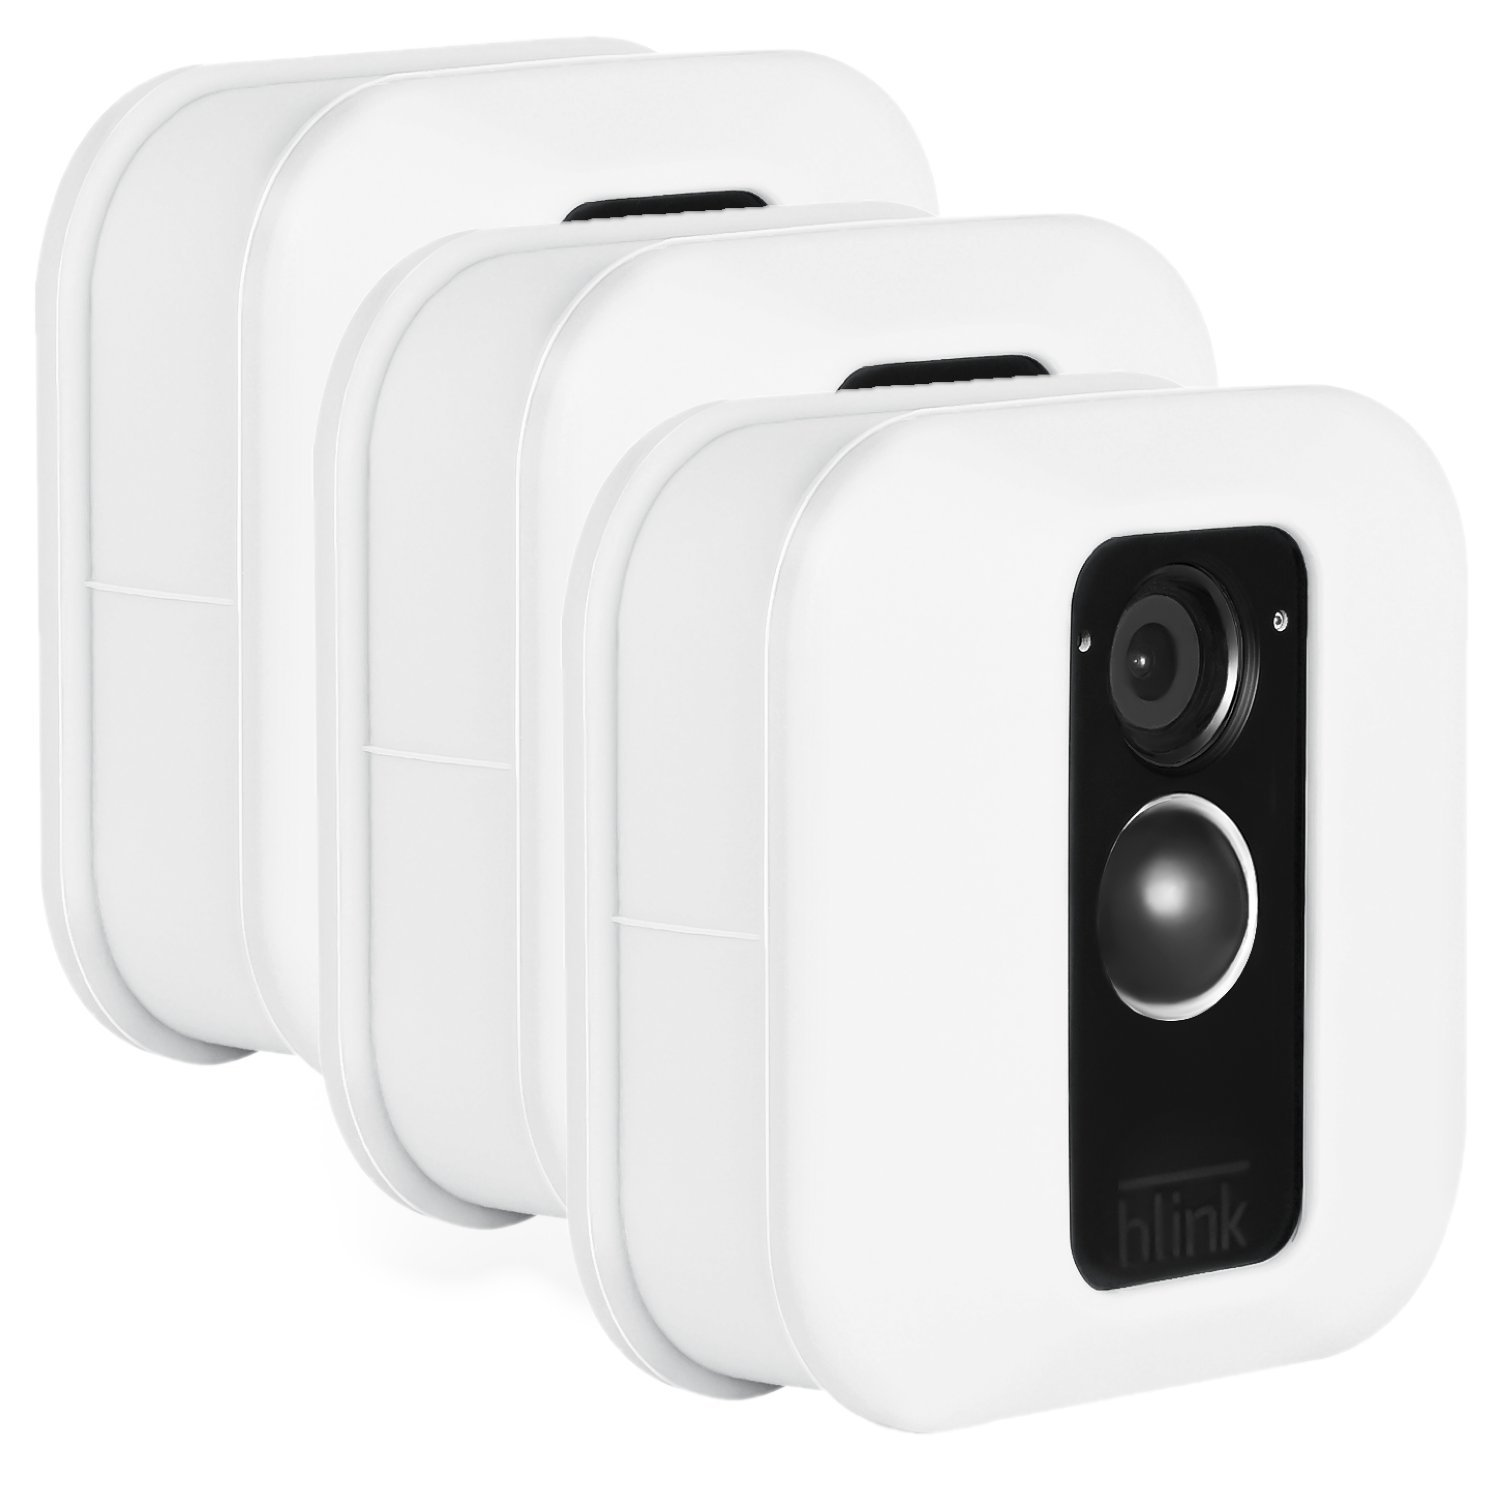 Blink XT Outdoor Camera Silicone Skin - Colorful Silicone Skin to Help Camouflage and Accessorize Your Home Security Camera - by Wasserstein (3 Pack, White) by Wasserstein